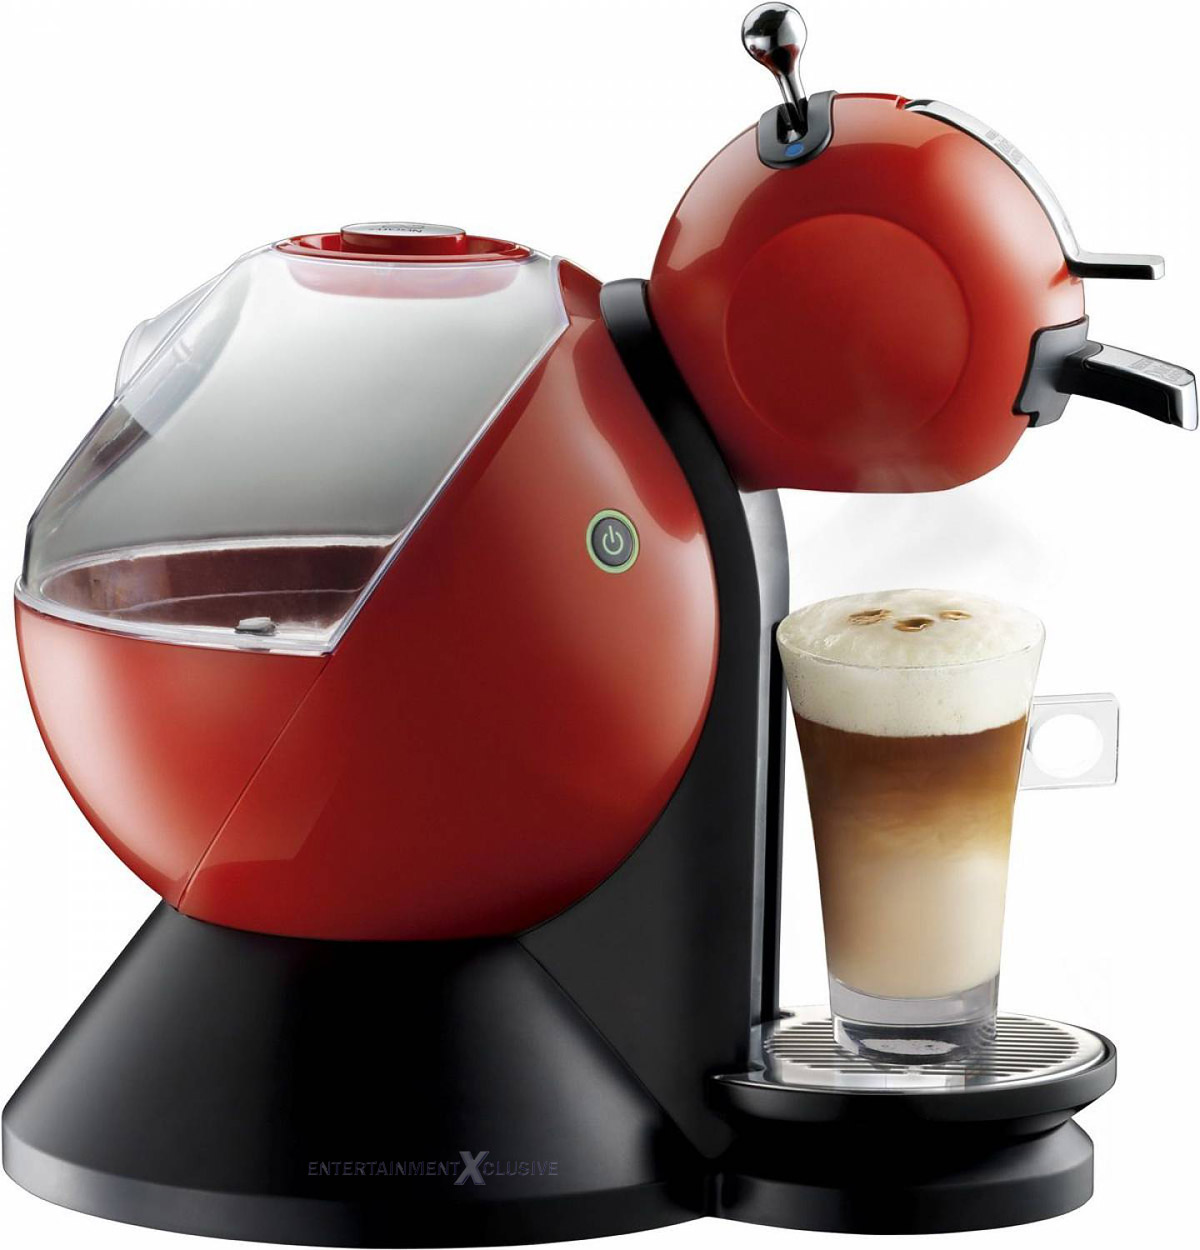 NESCAFe Dolce Gusto by Krups KP210640 Coffee Machine, Red, 15 Bar Pressure Pump eBay